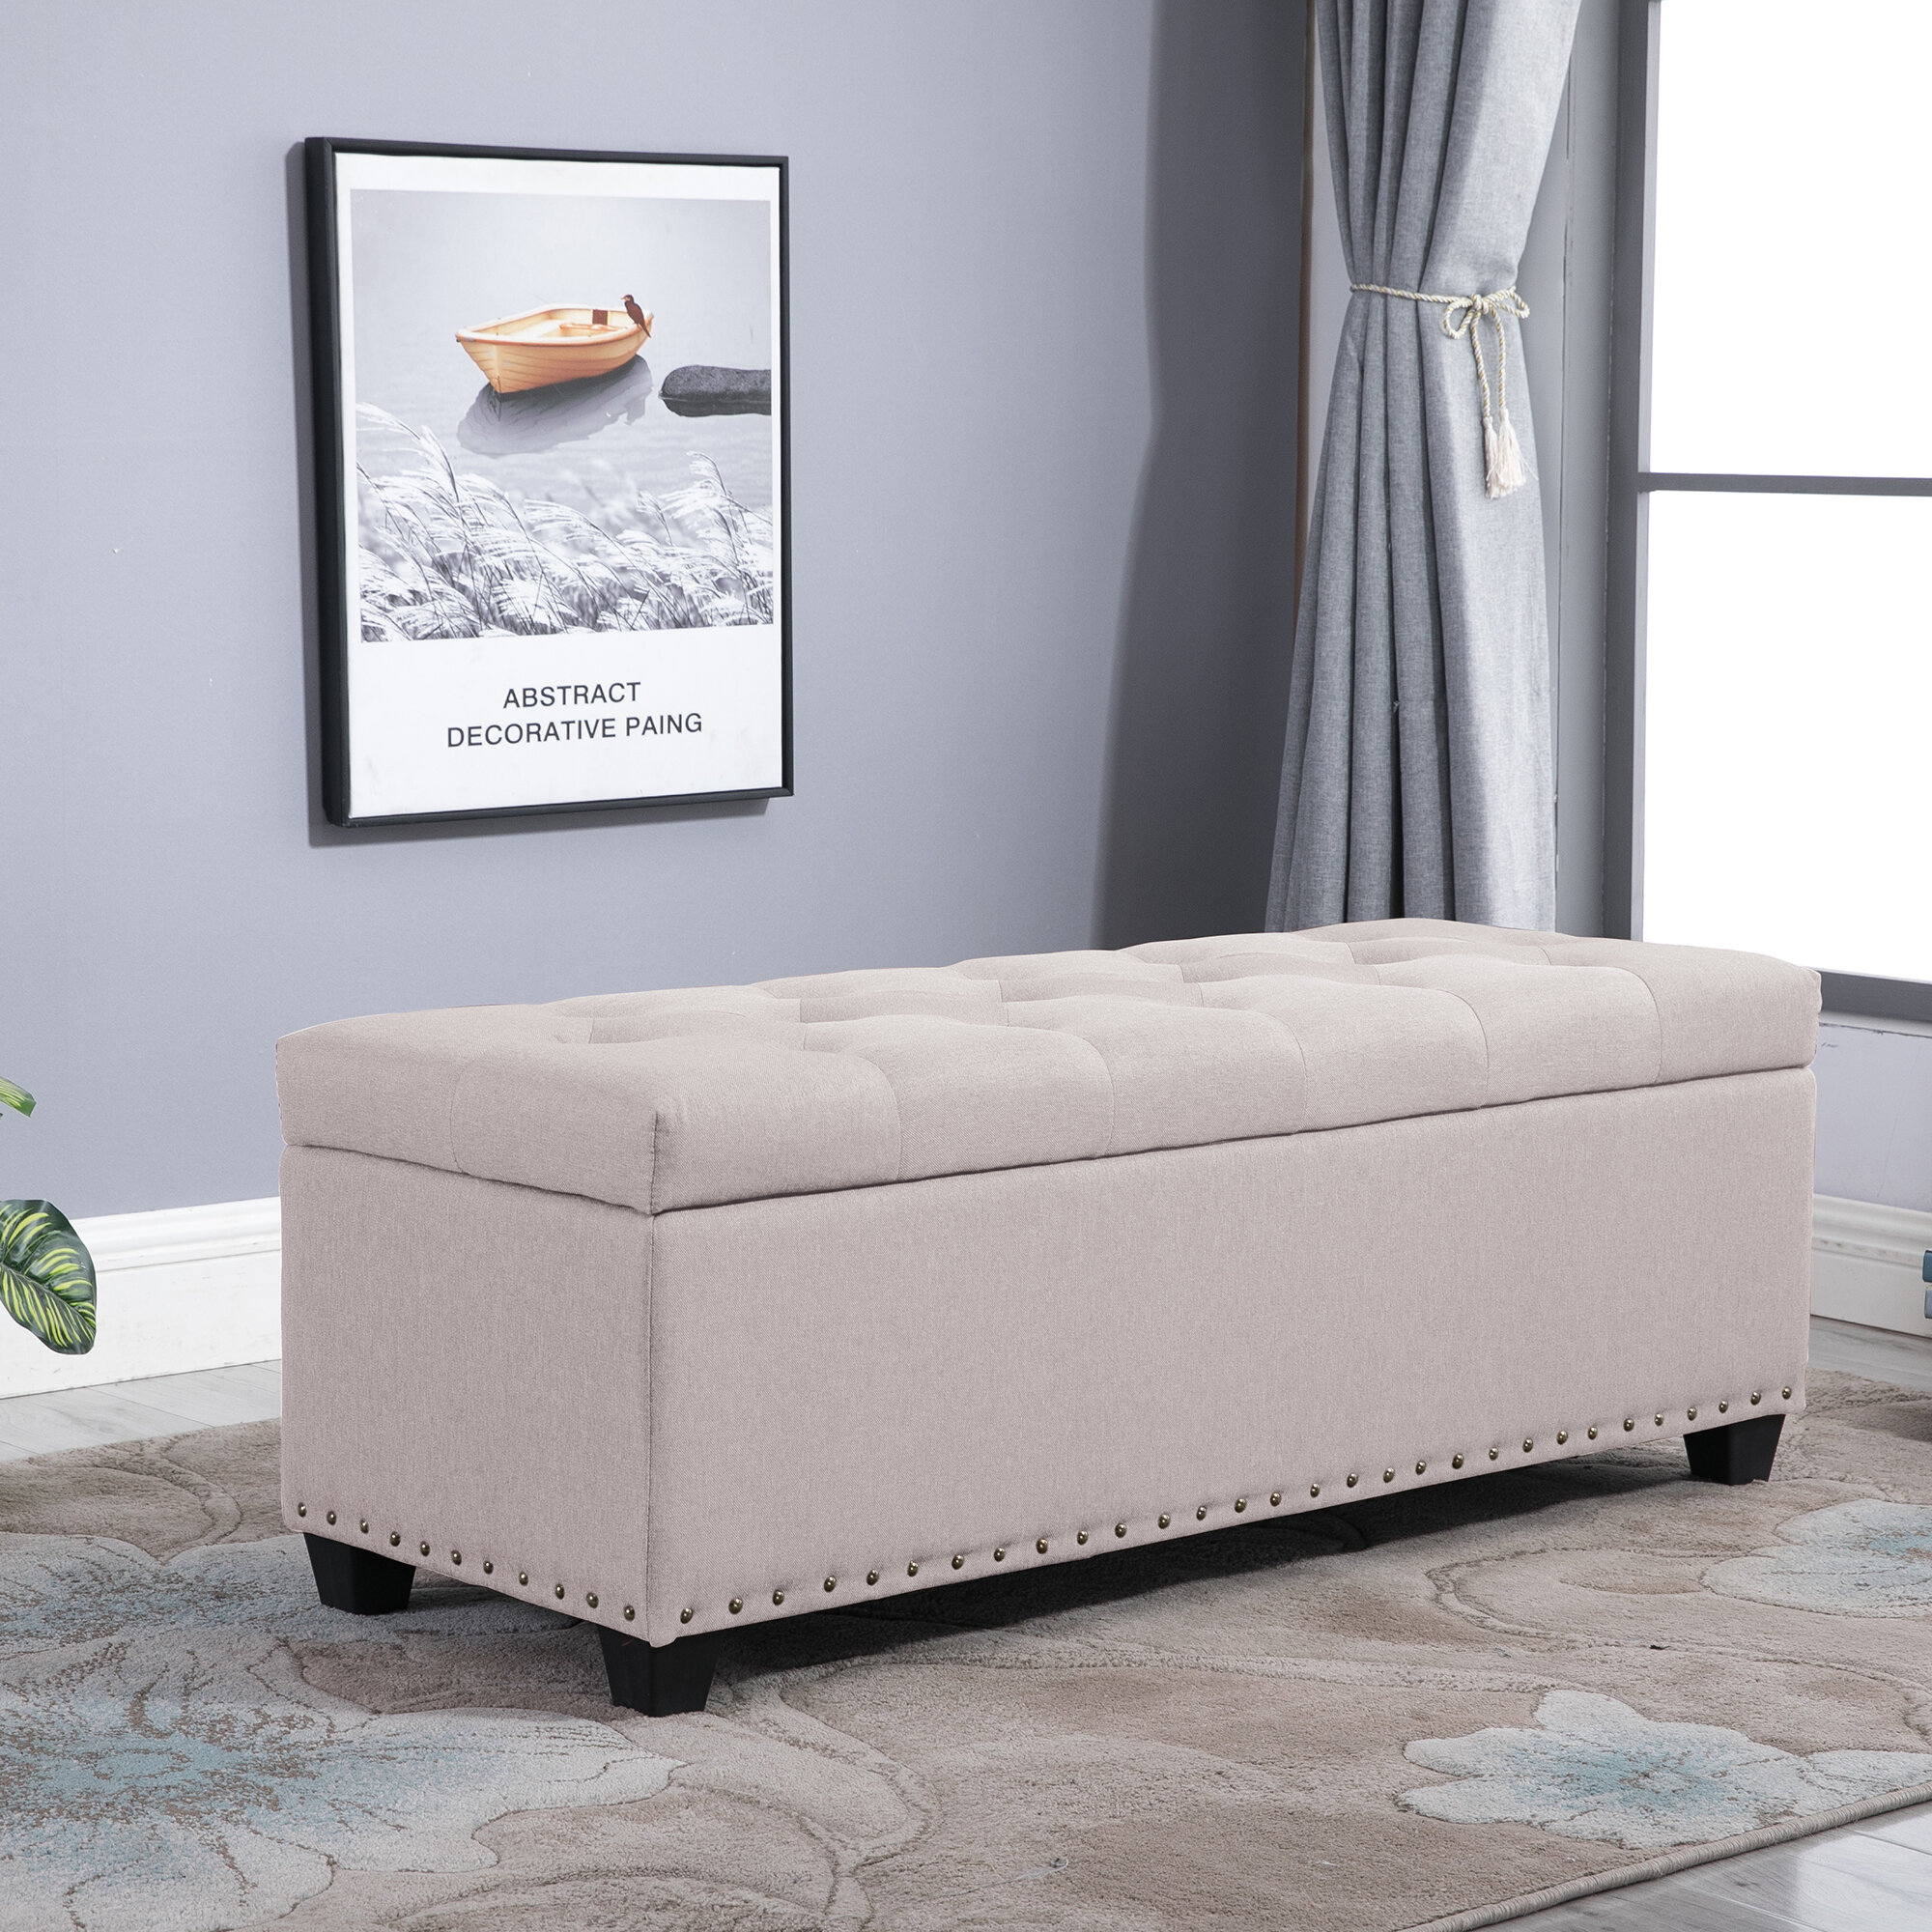 Astonishing Sibley Tufted Storage Ottoman Andrewgaddart Wooden Chair Designs For Living Room Andrewgaddartcom